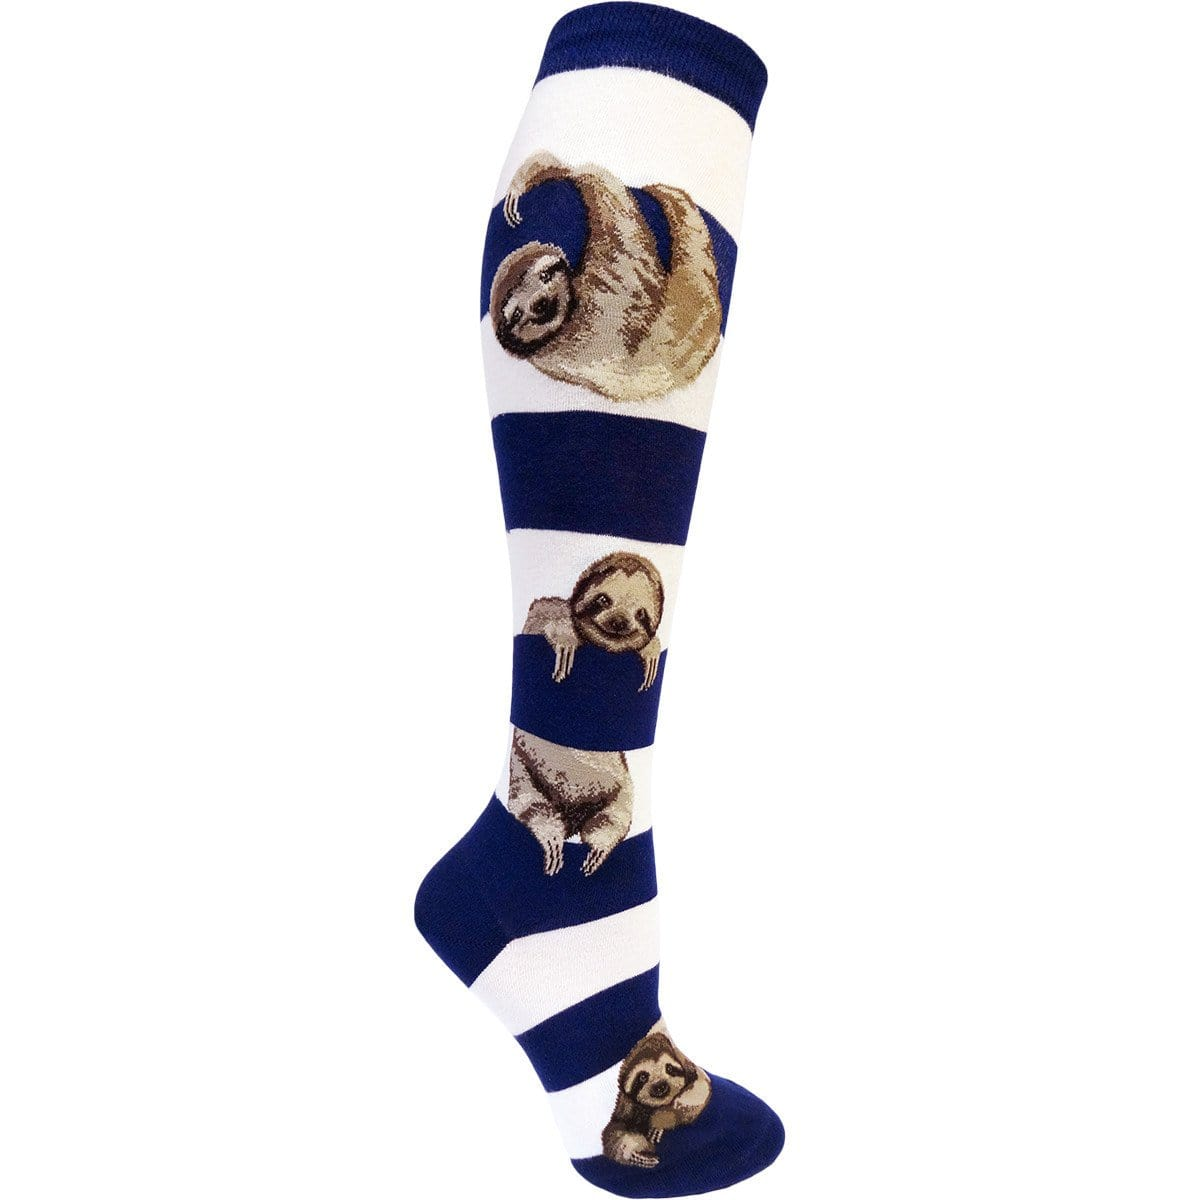 Sloth Stripe Sock Women's Knee High Socks Navy